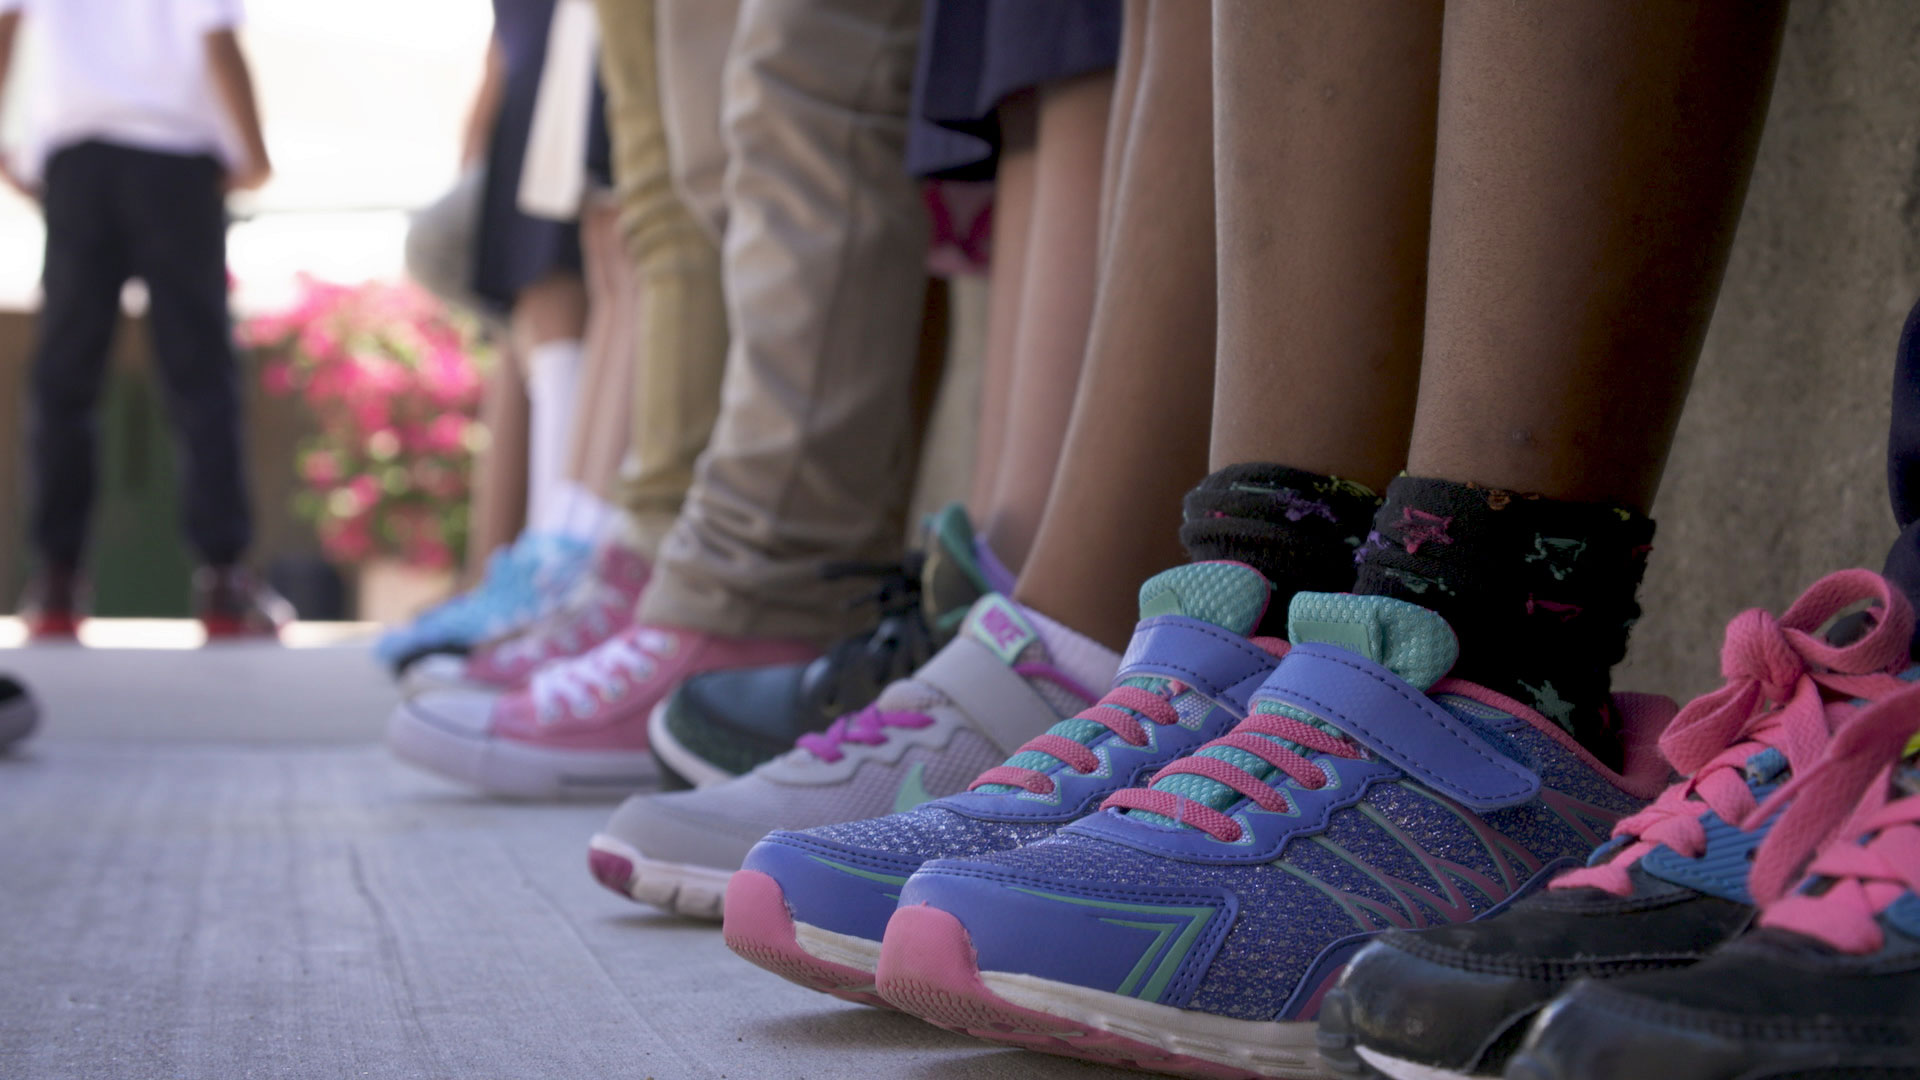 File image of children's shoes as they line up outside during school.